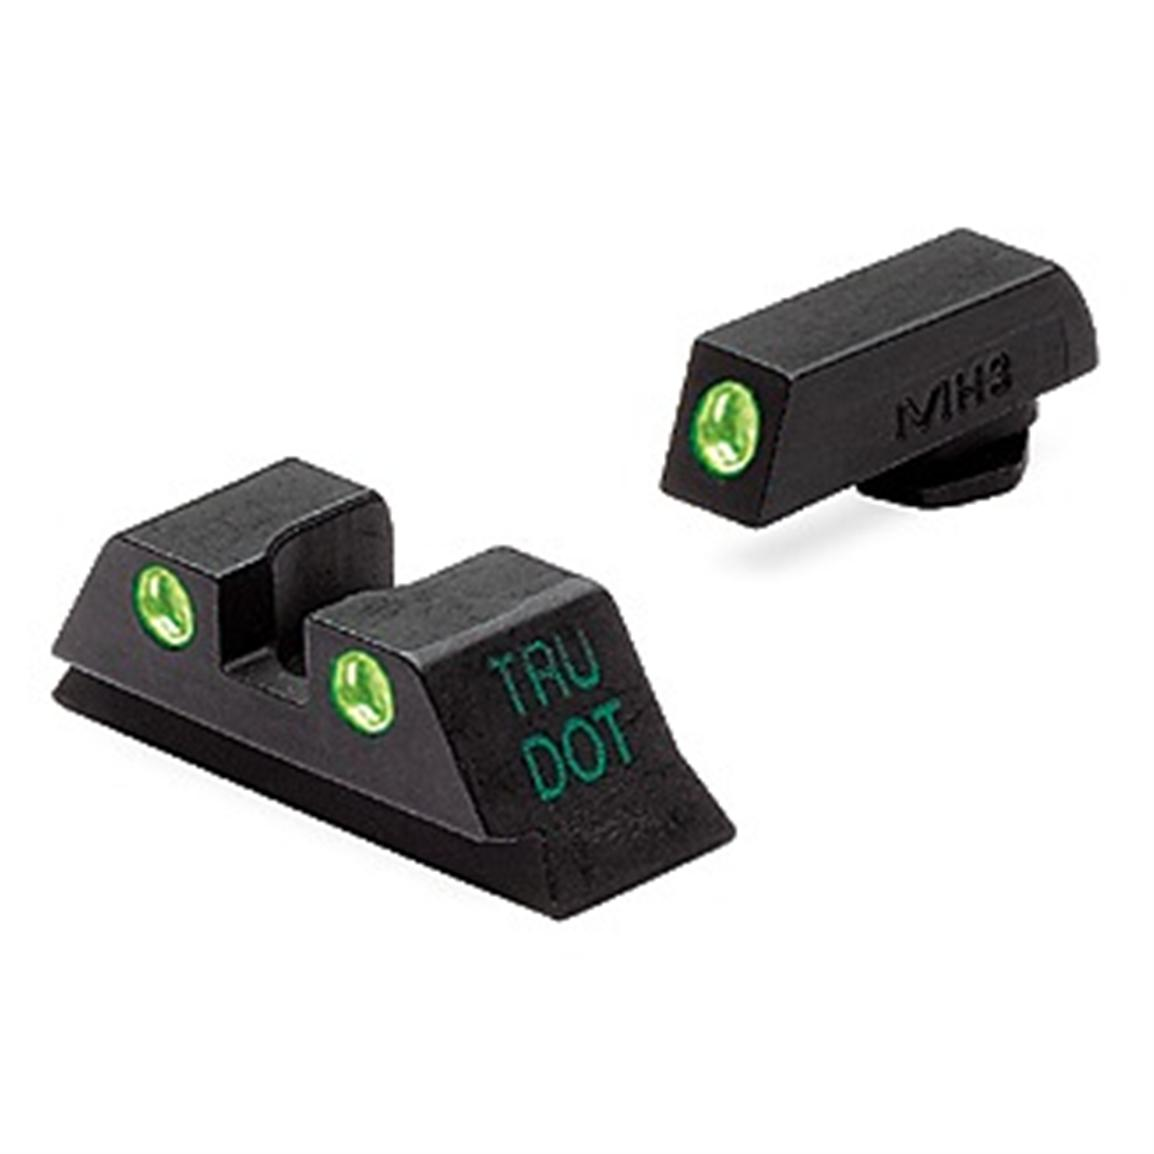 Meprolight Tru-Dot Tritium Night Sights - GLOCK 9mm/.40/.45GAP